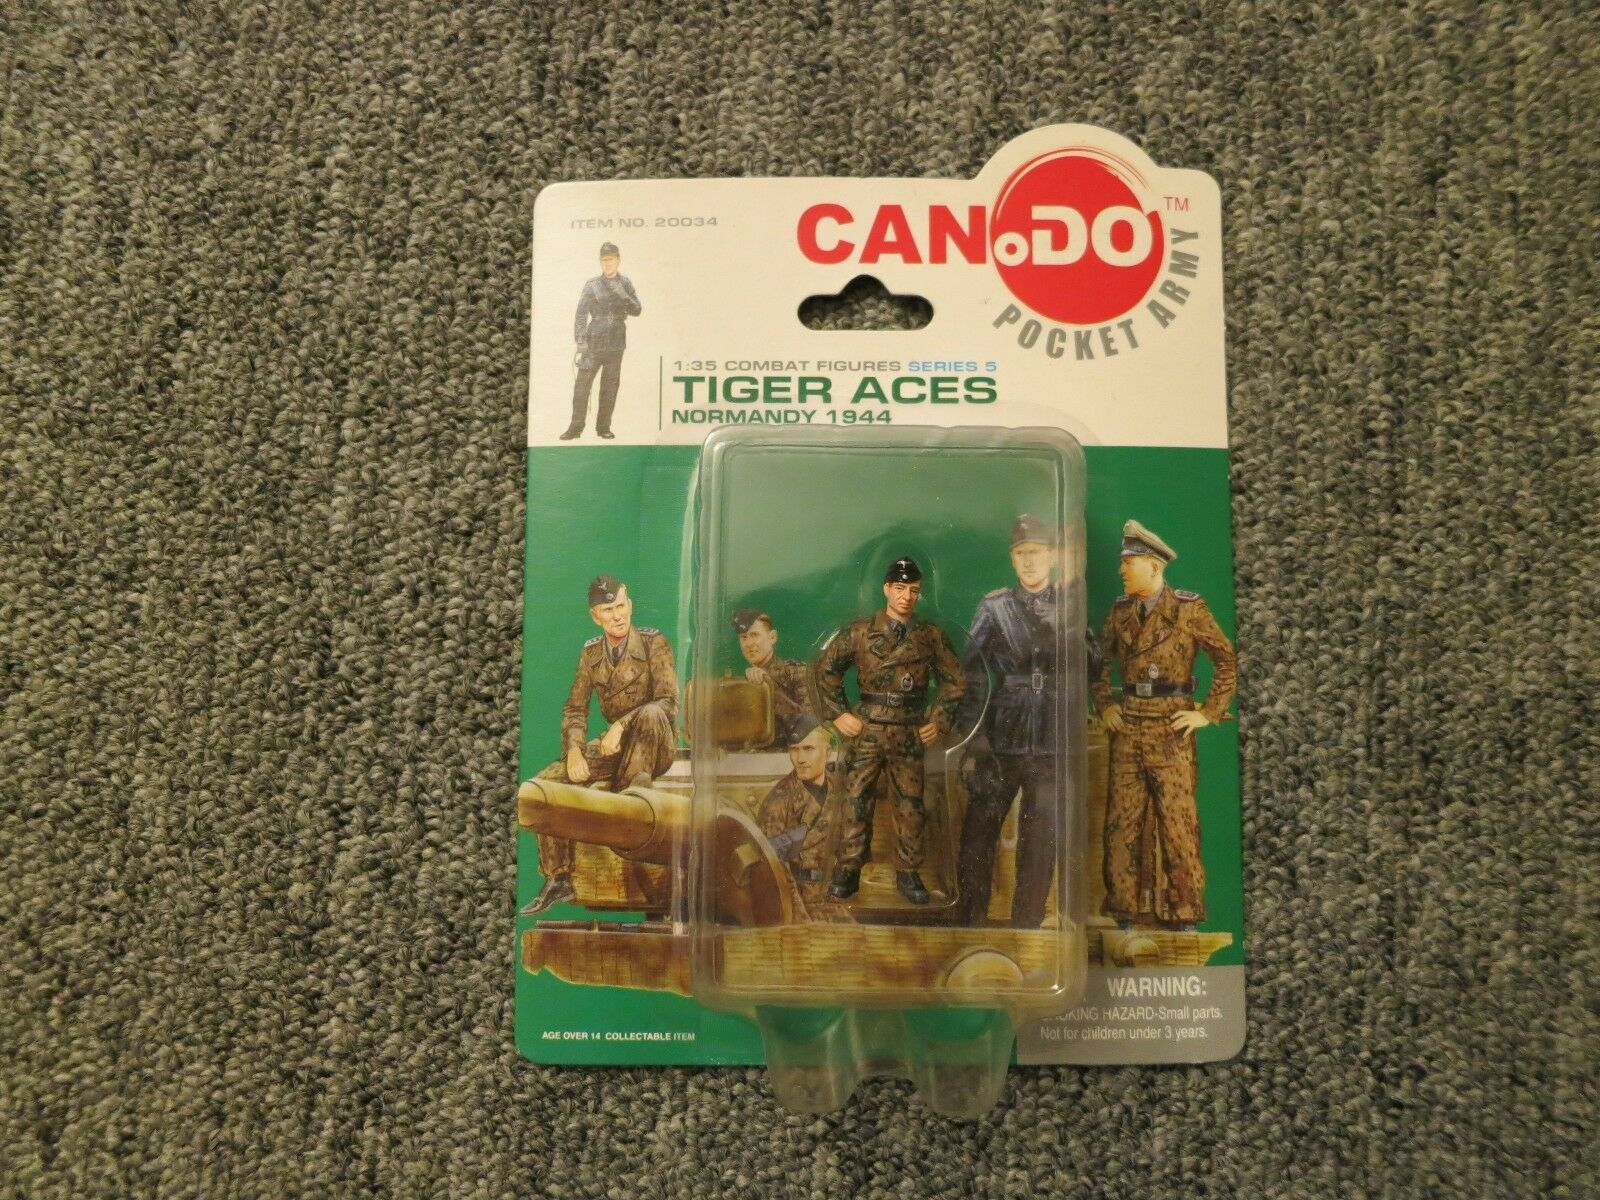 DRAGON CanDo 1 35 Tiger Aces Normandy 1944 Special Piece X Chase